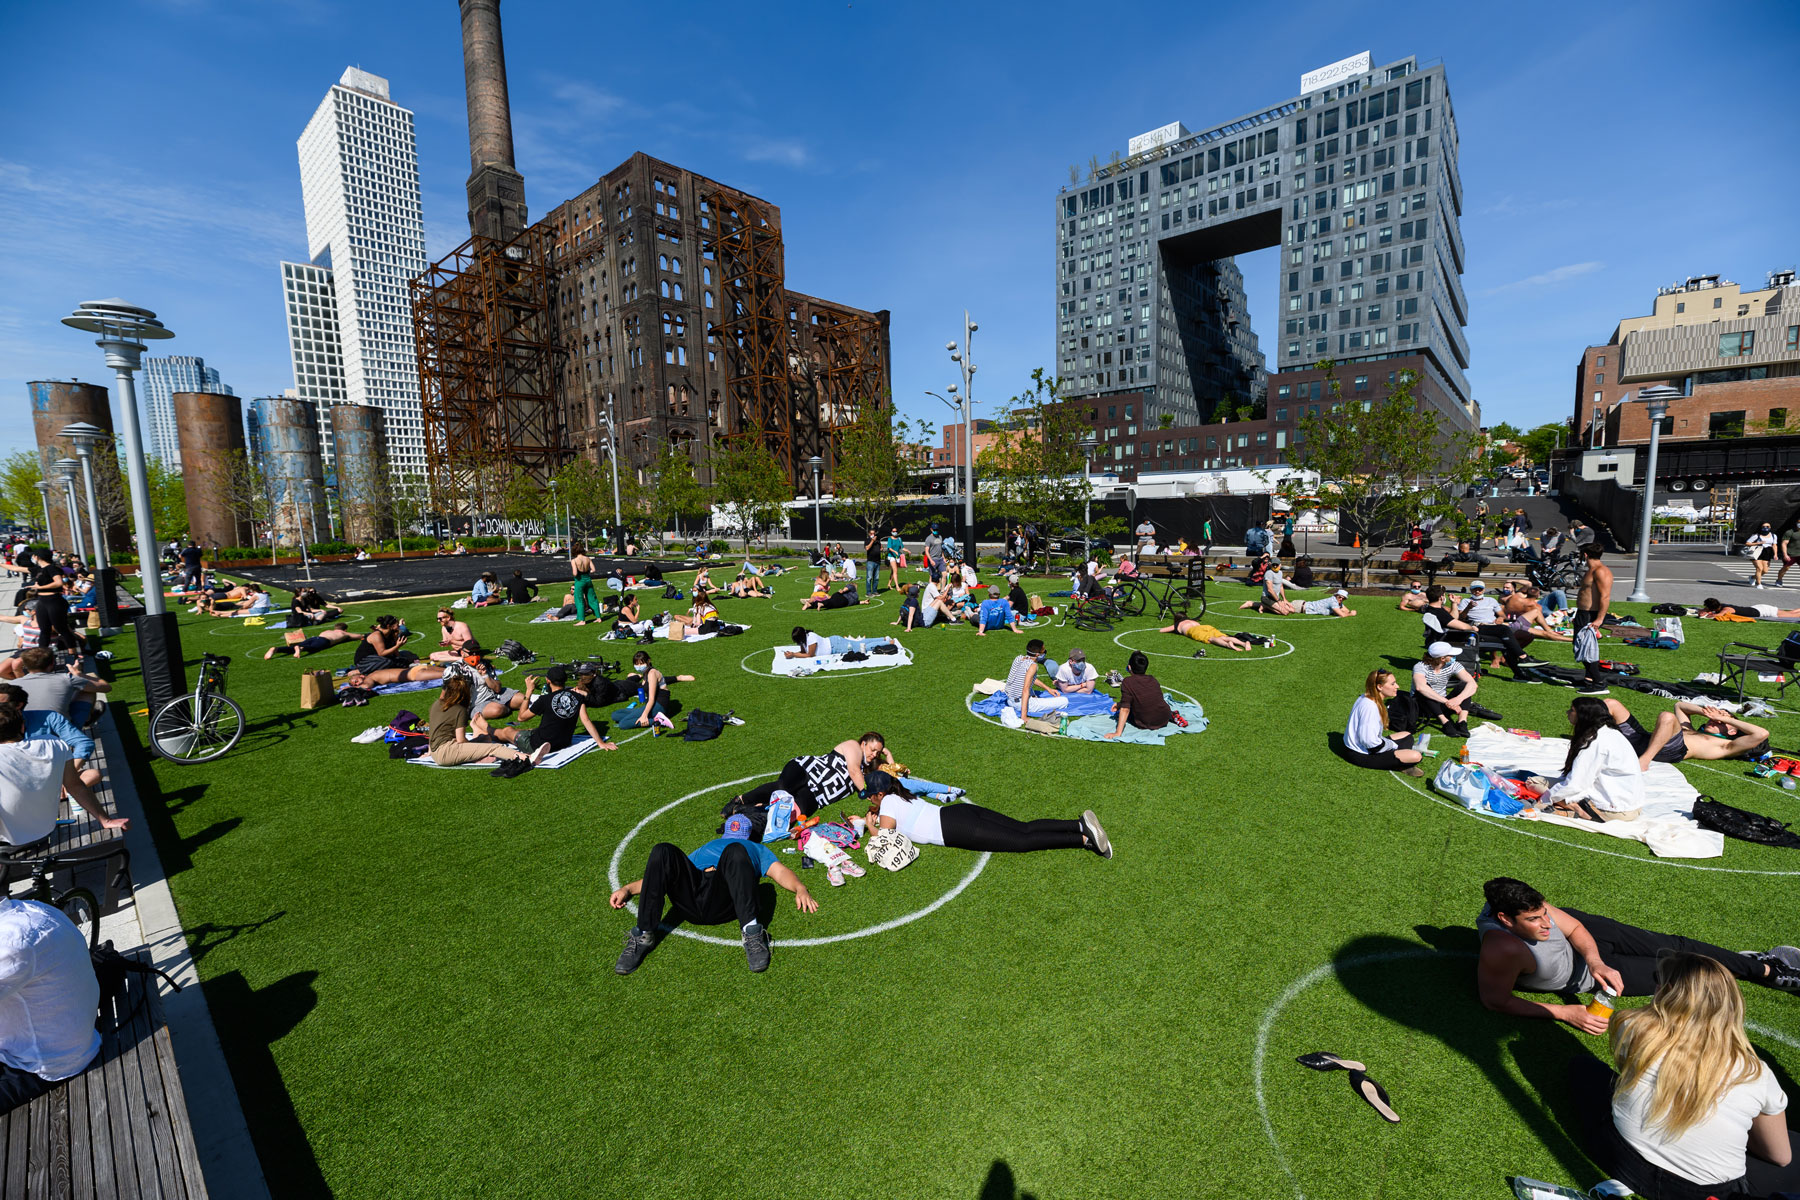 people sit in circles painted on the grass in Domino Park, Williamsburg